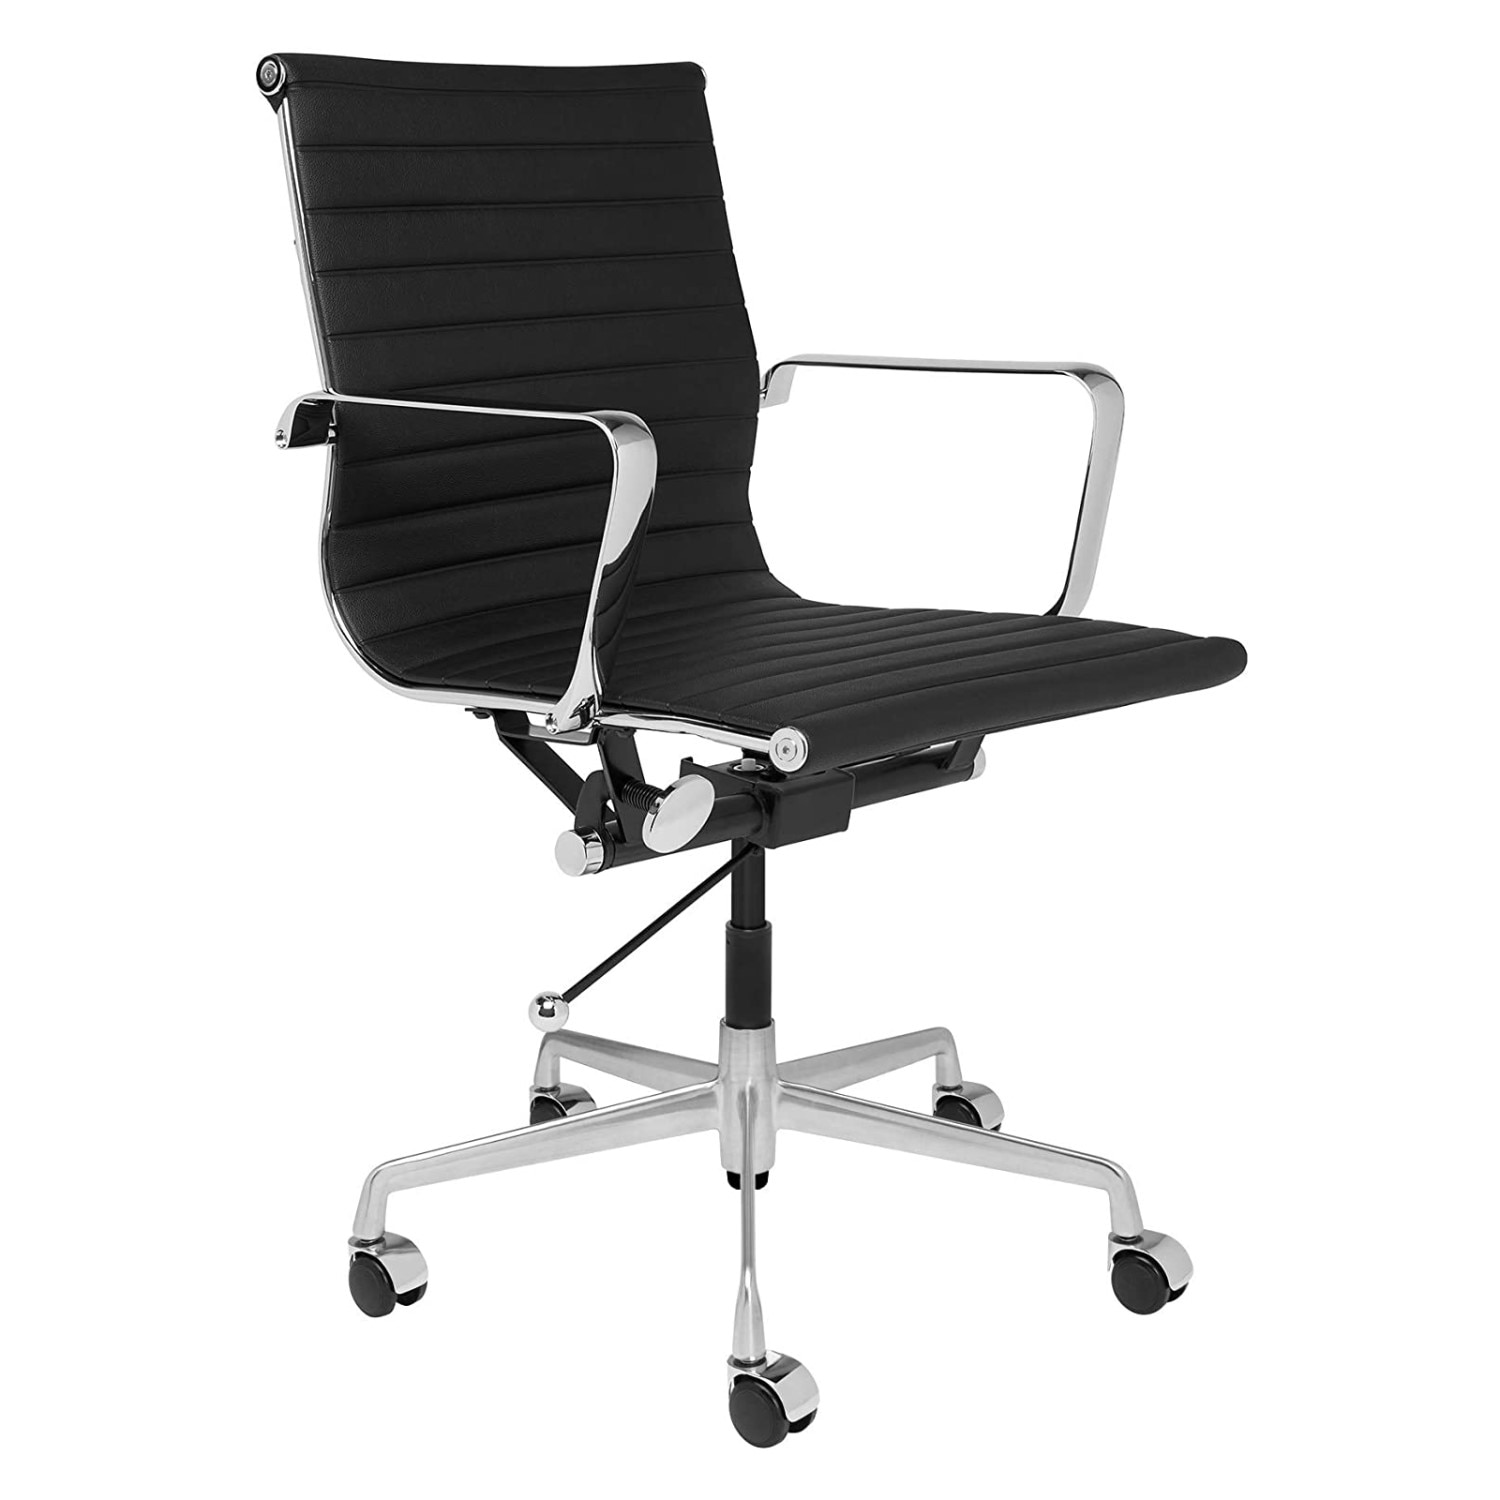 H6f19bf0cb6f449d3bb1504b5b200383b2 - Furgle Executive Office Chair Mid Back PU Leather with Arms Rest Tilt Gaming Chair Adjustable Height with Wheels Swivel Chairs